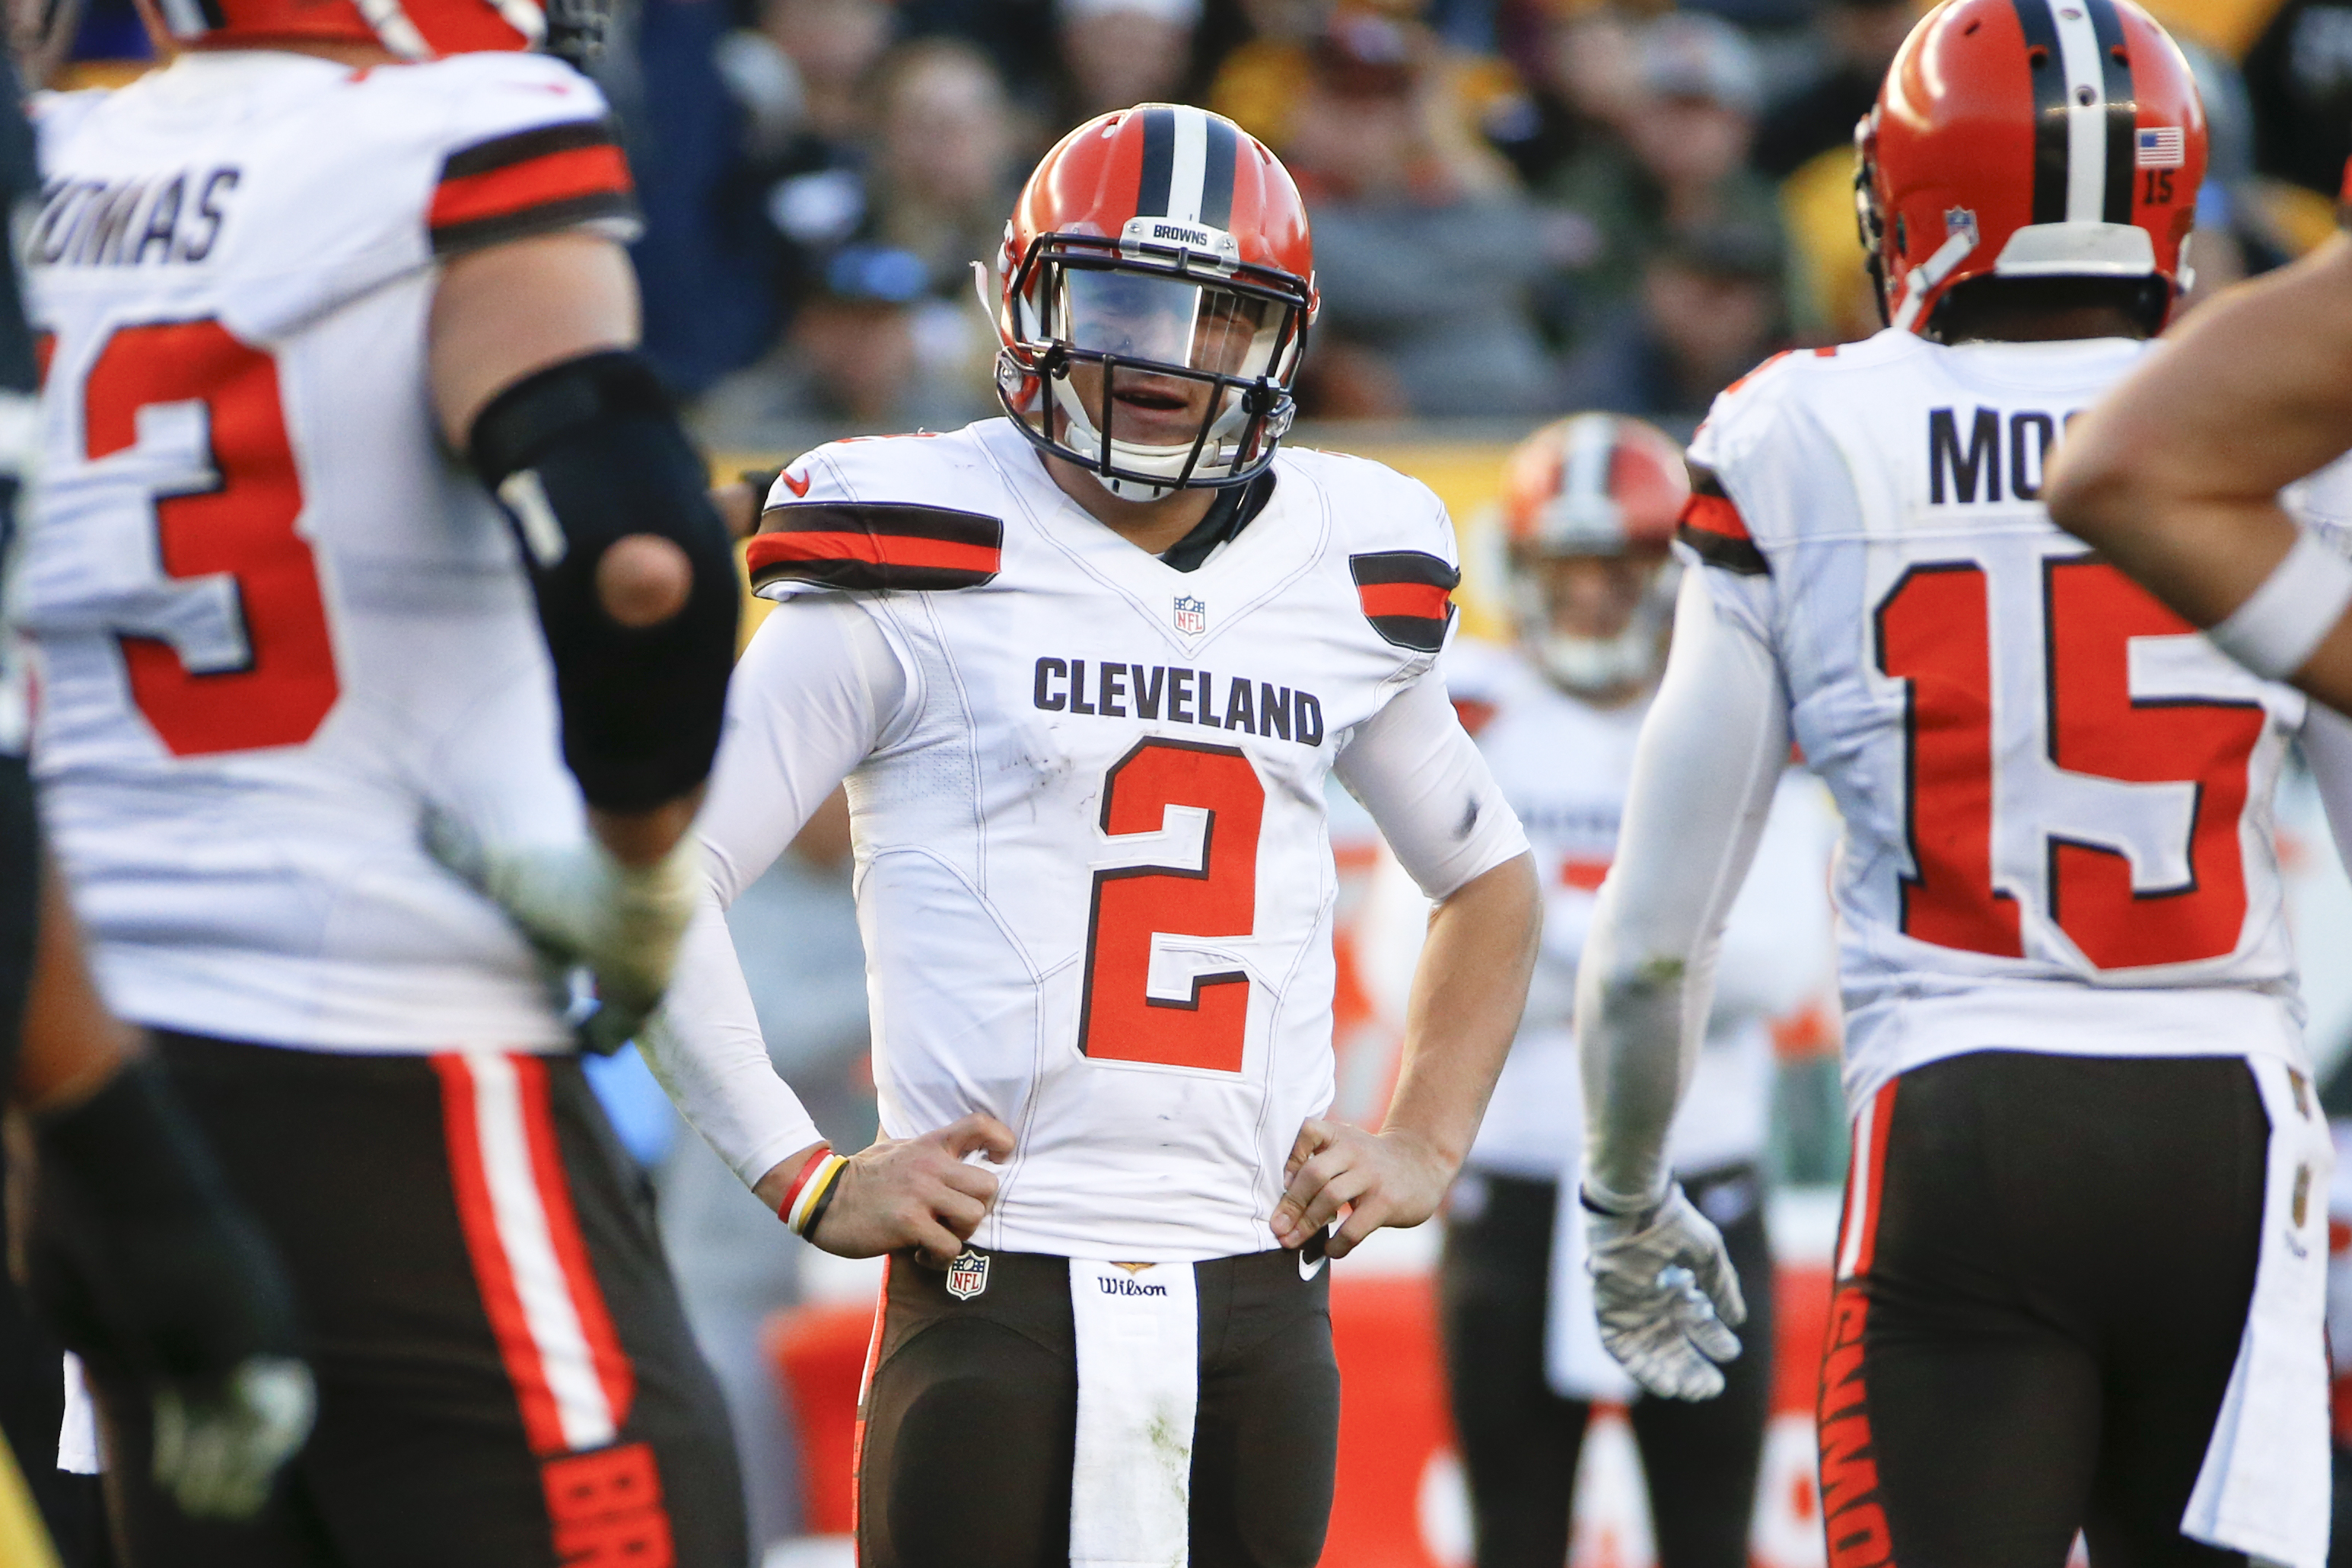 FILE - In this Nov. 15, 2015, file photo, Cleveland Browns quarterback Johnny Manziel (2) plays during an NFL football game against the Pittsburgh Steelers, in Pittsburgh. Browns coach Mike Pettine says he's disappointed with Manziel's off-field behavior